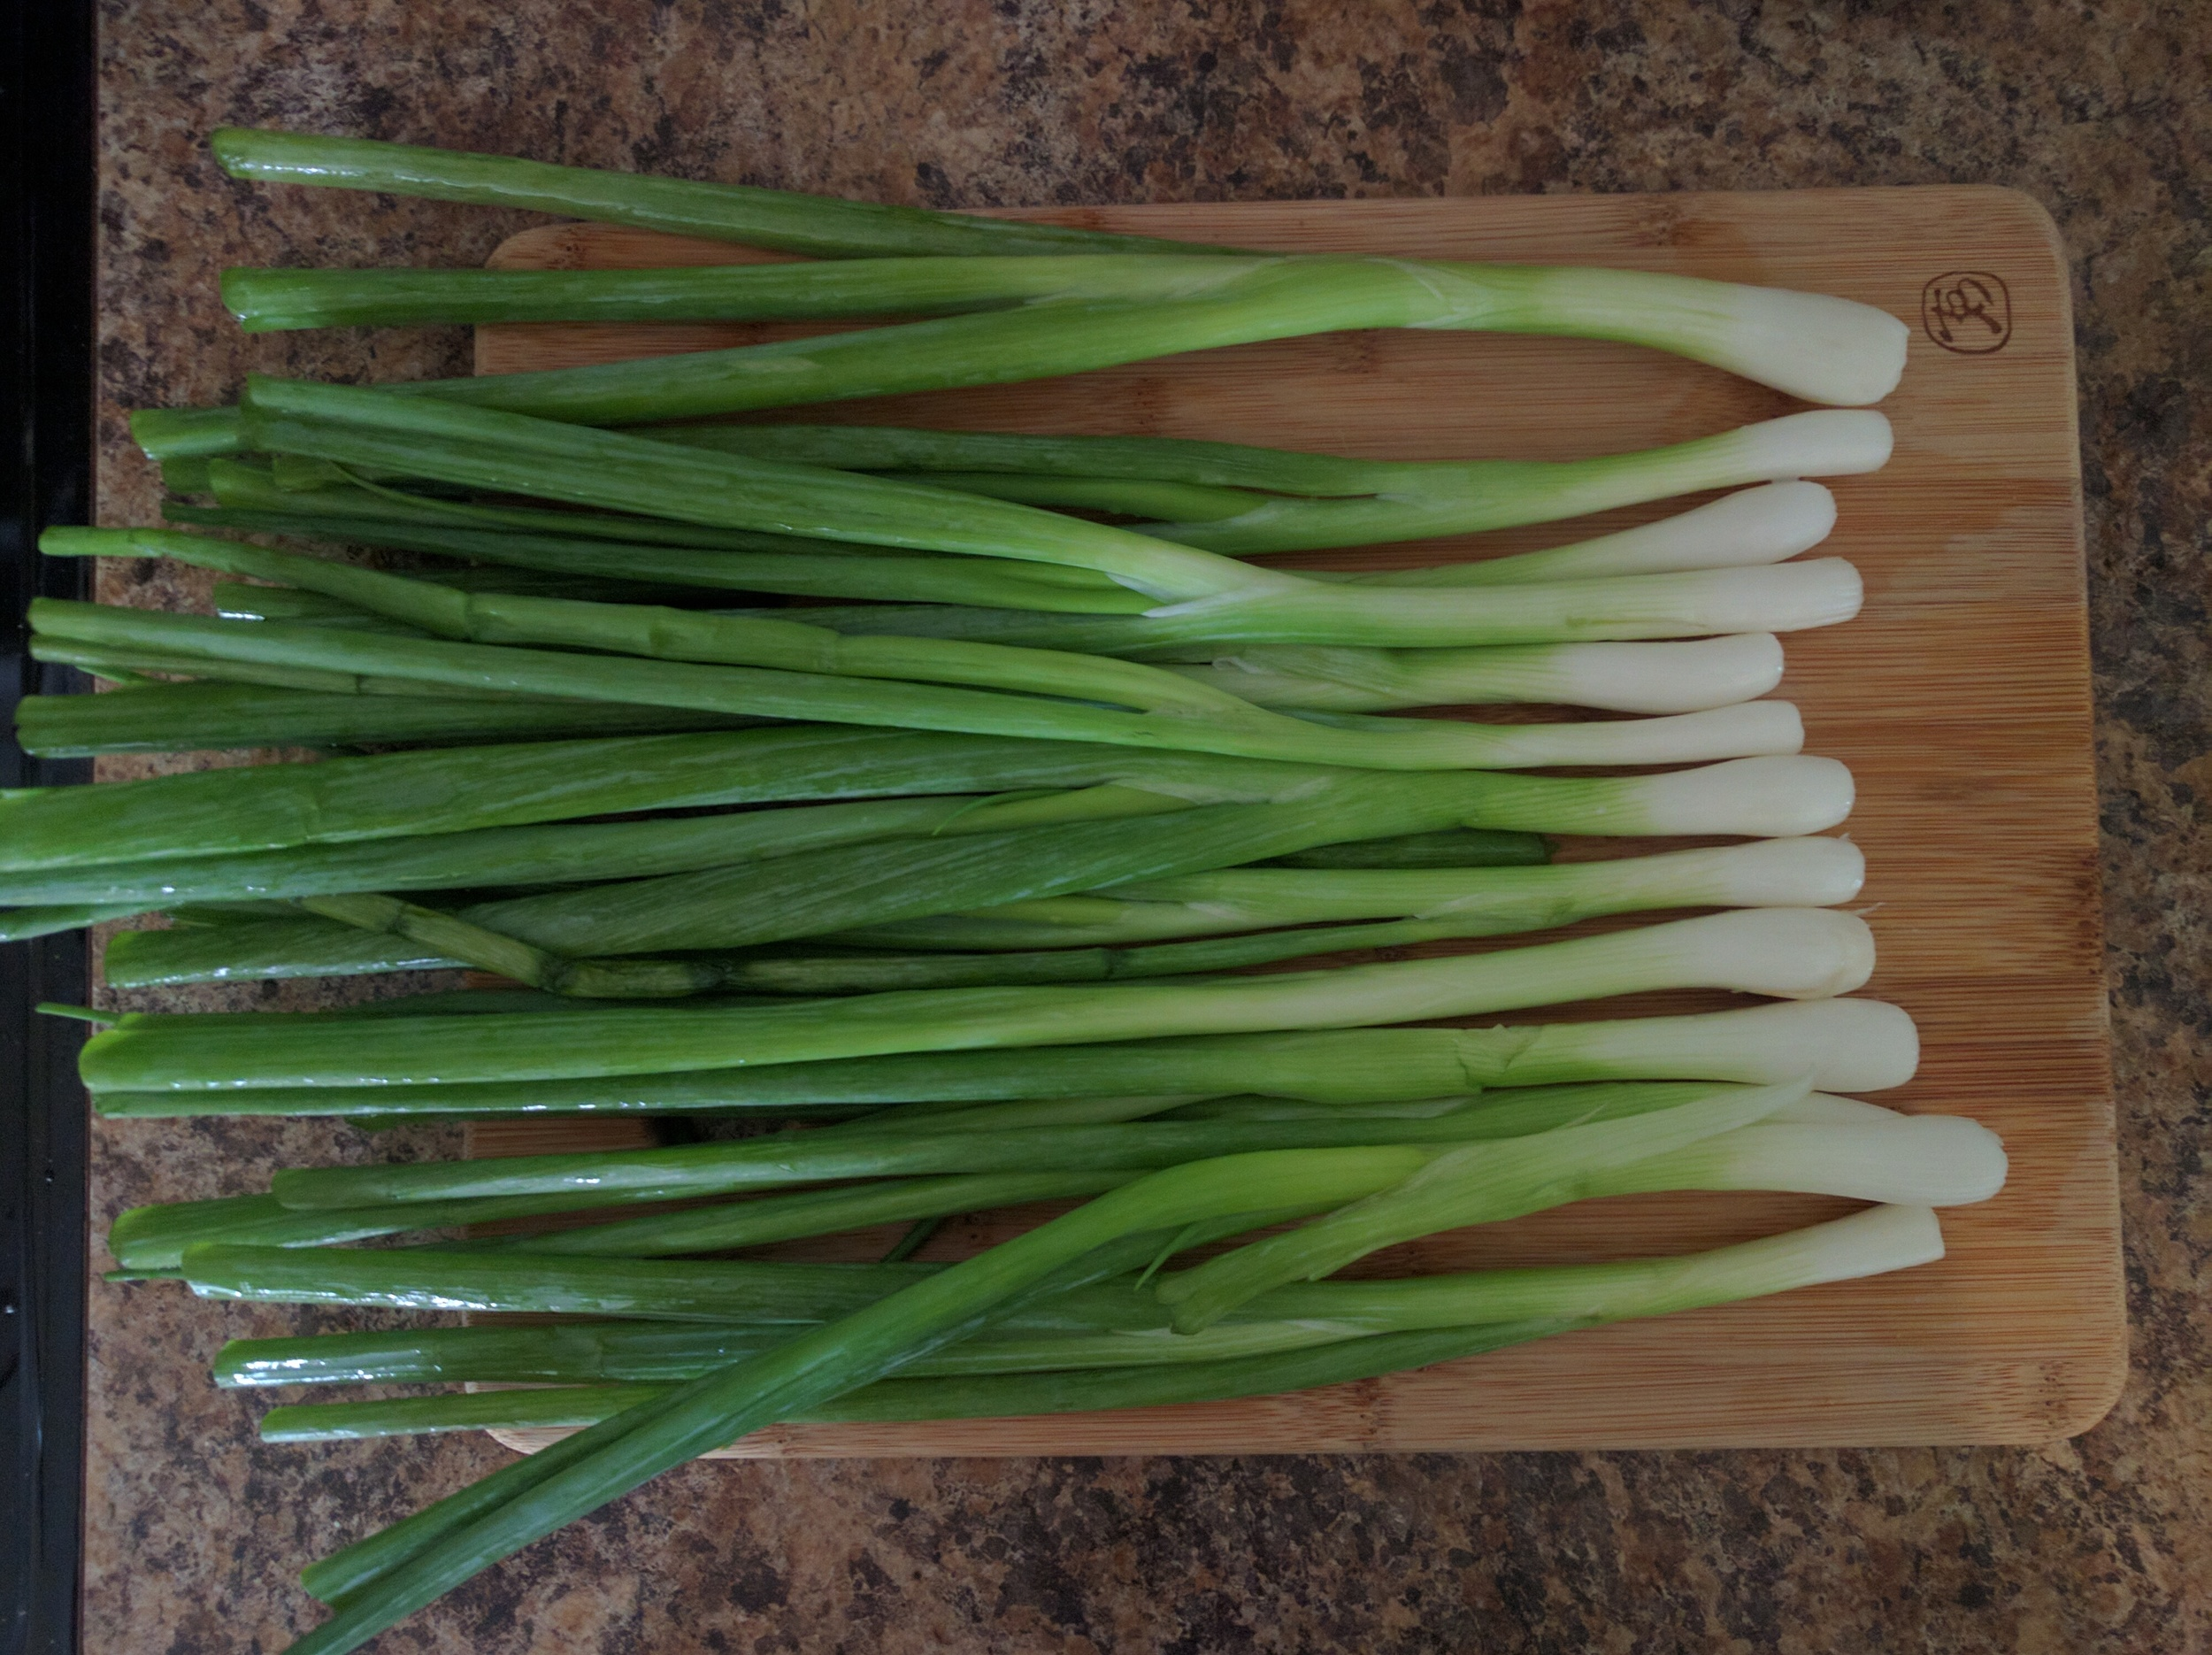 Correct way to chop green onions: cut off the roots & two inches from the green tops first, then slice the rest!